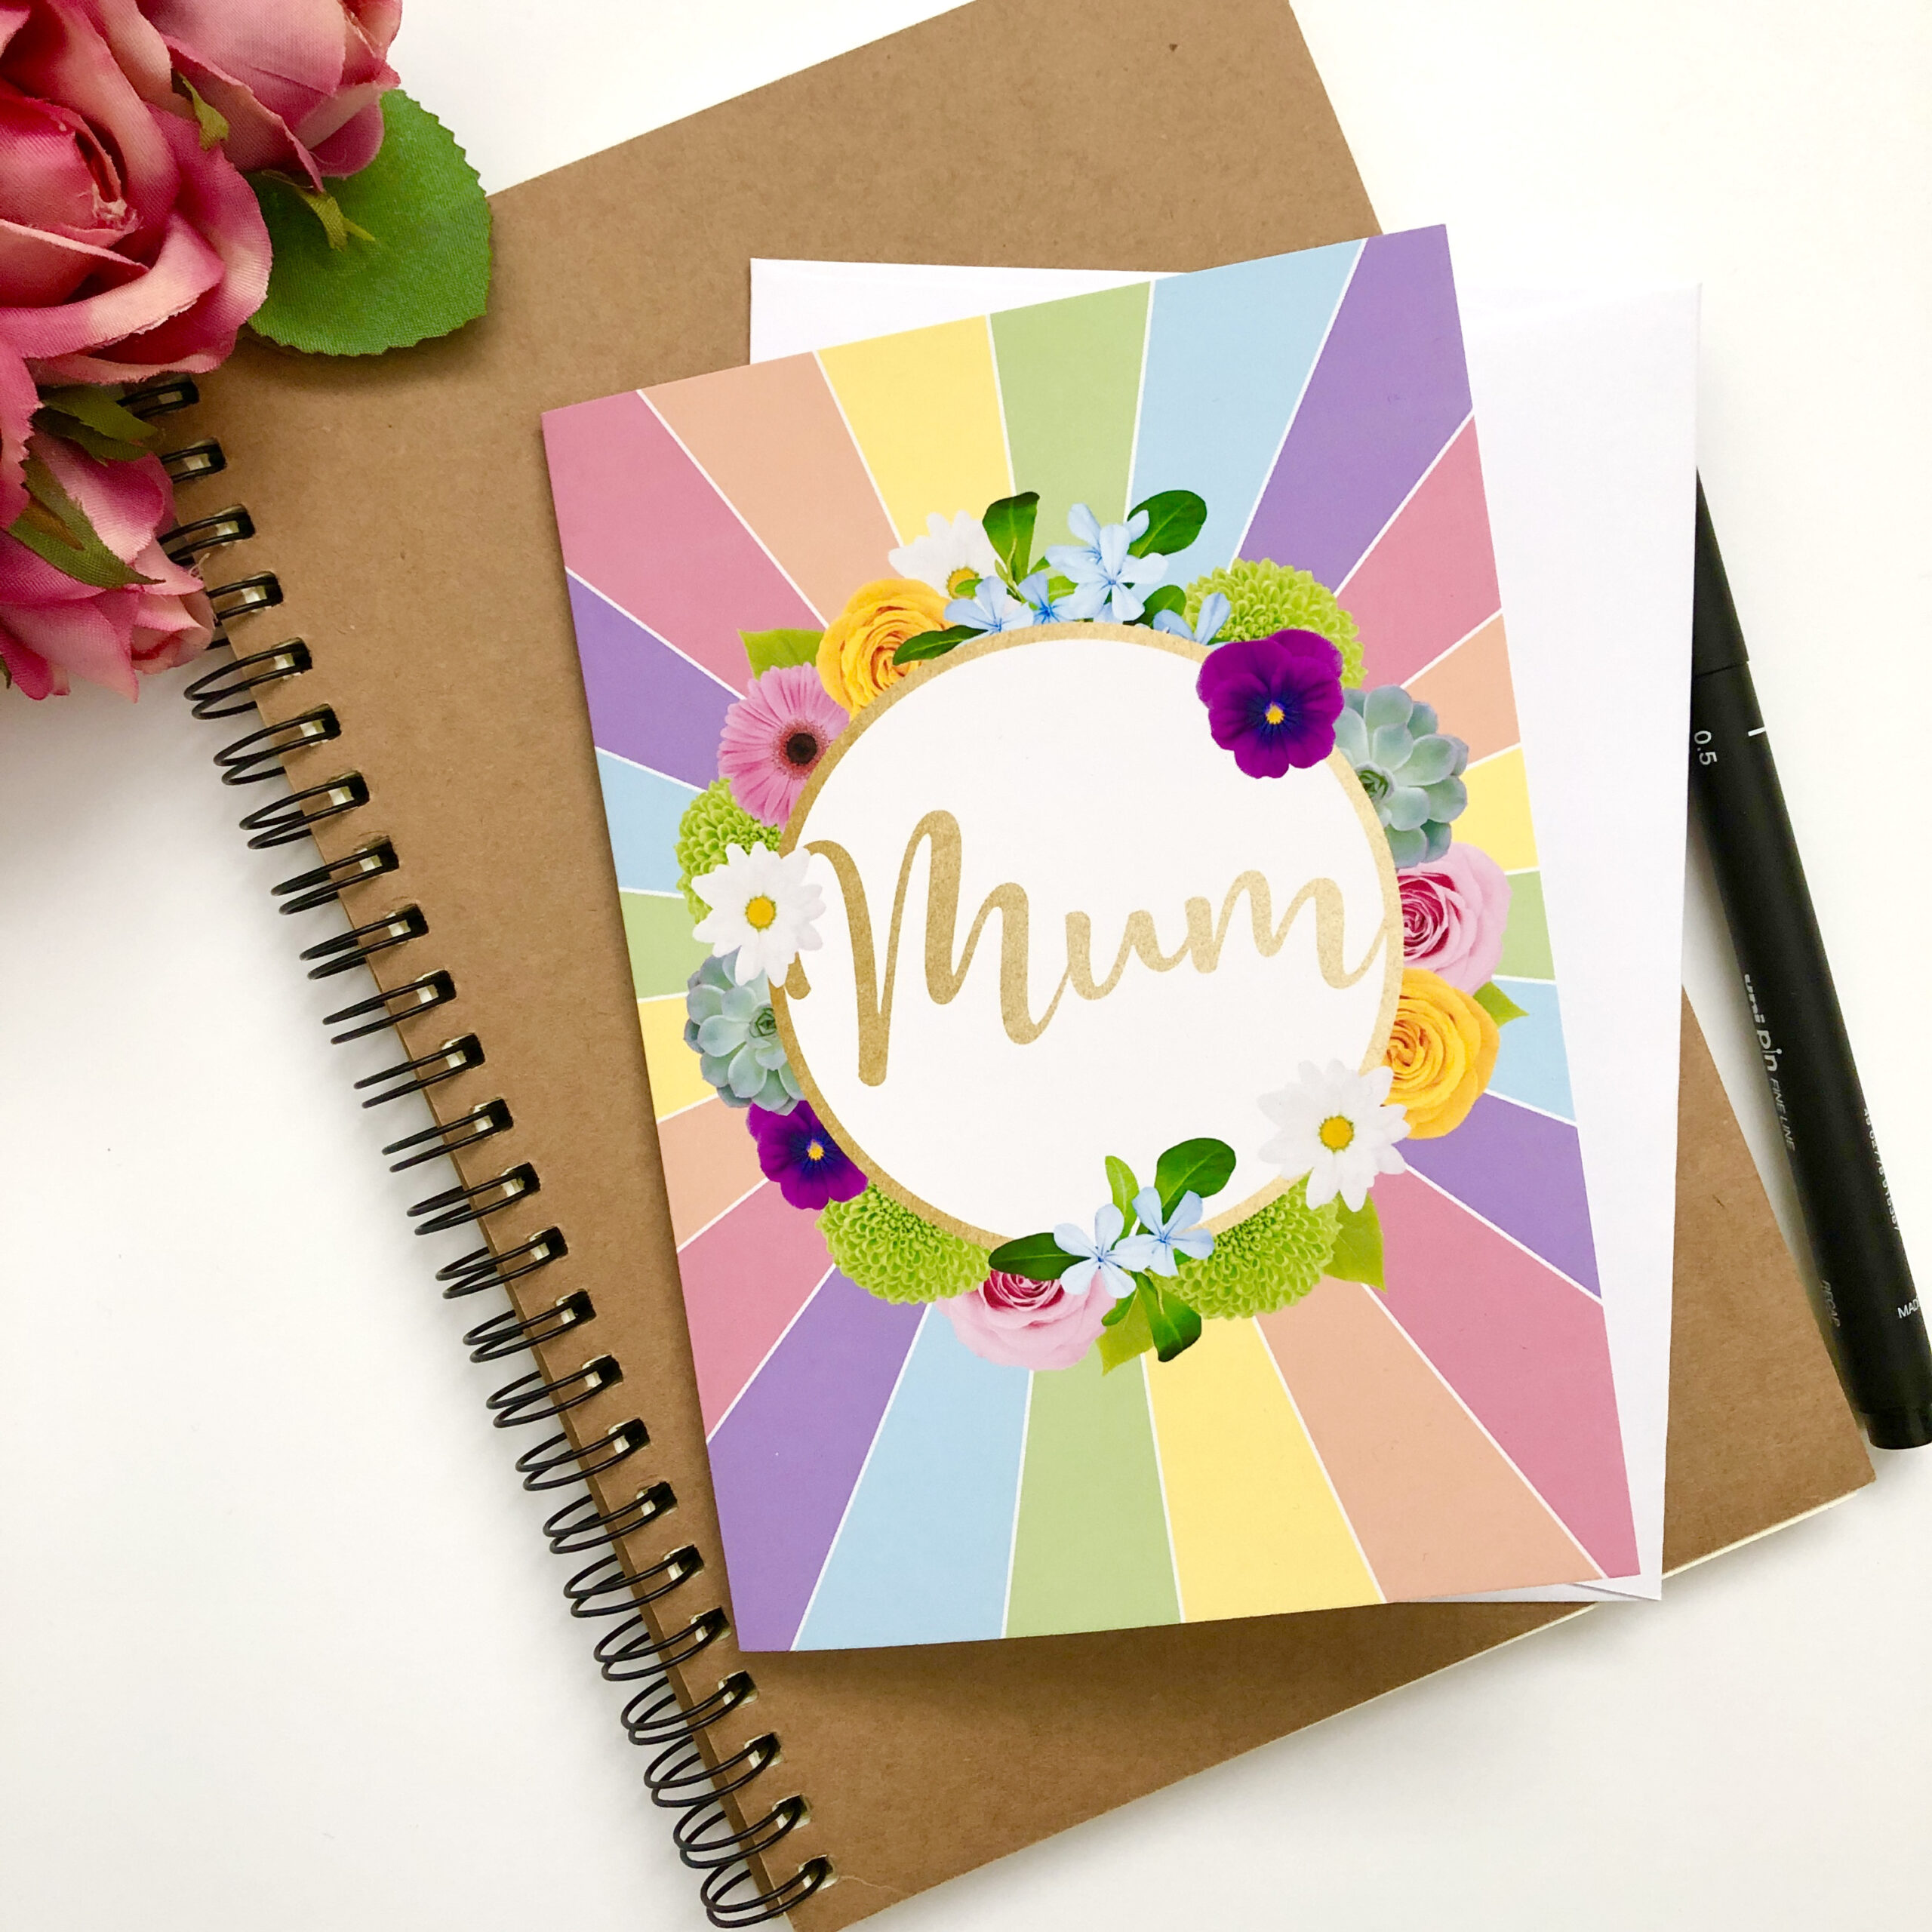 Floral Greetings Card for Mum featuring multicoloured flowers and a rainbow sunburst background